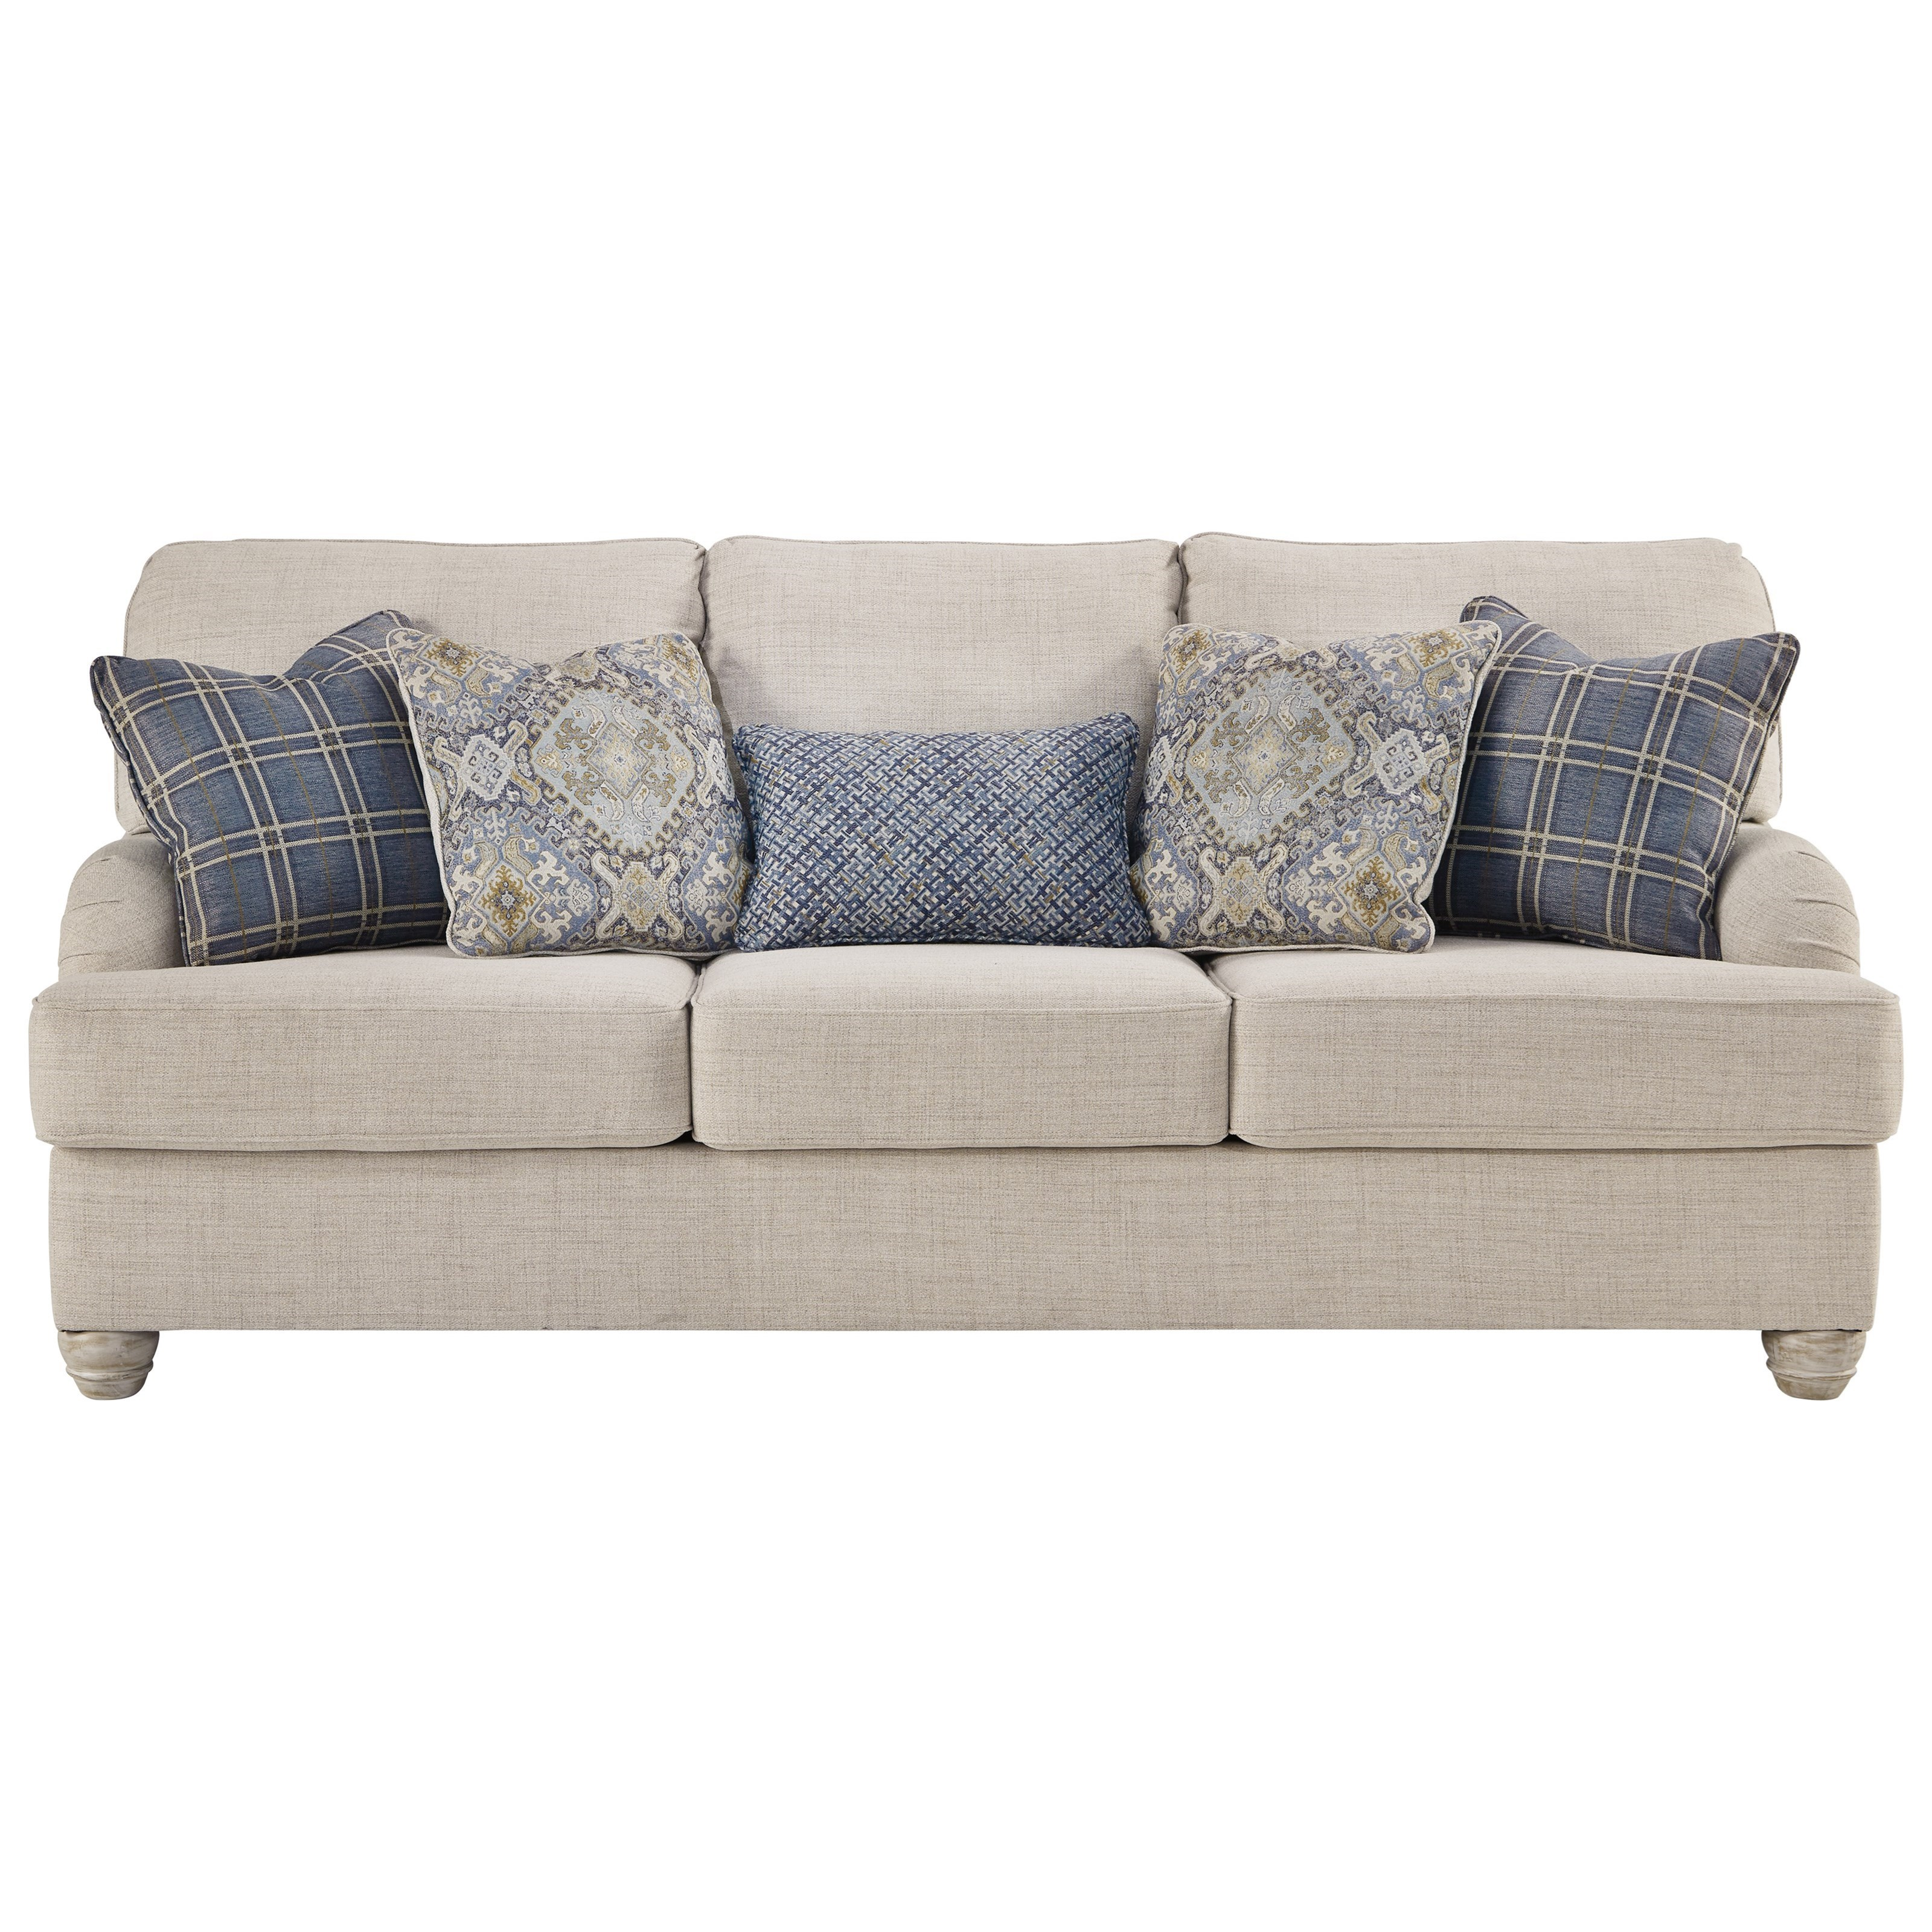 Traemore Sofa by Benchcraft at Zak's Warehouse Clearance Center